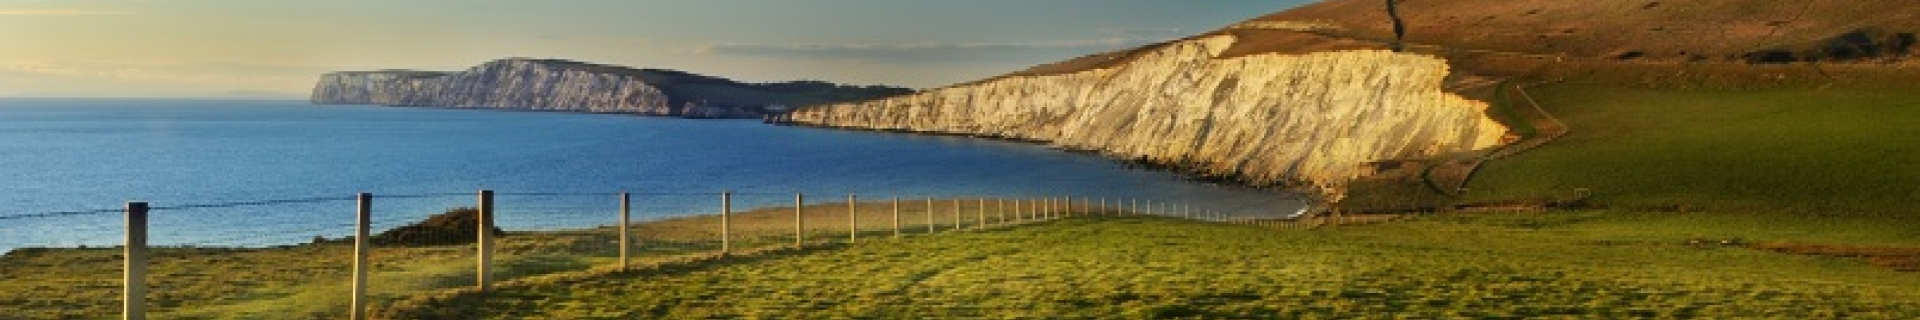 Banner image for Isle of Wight